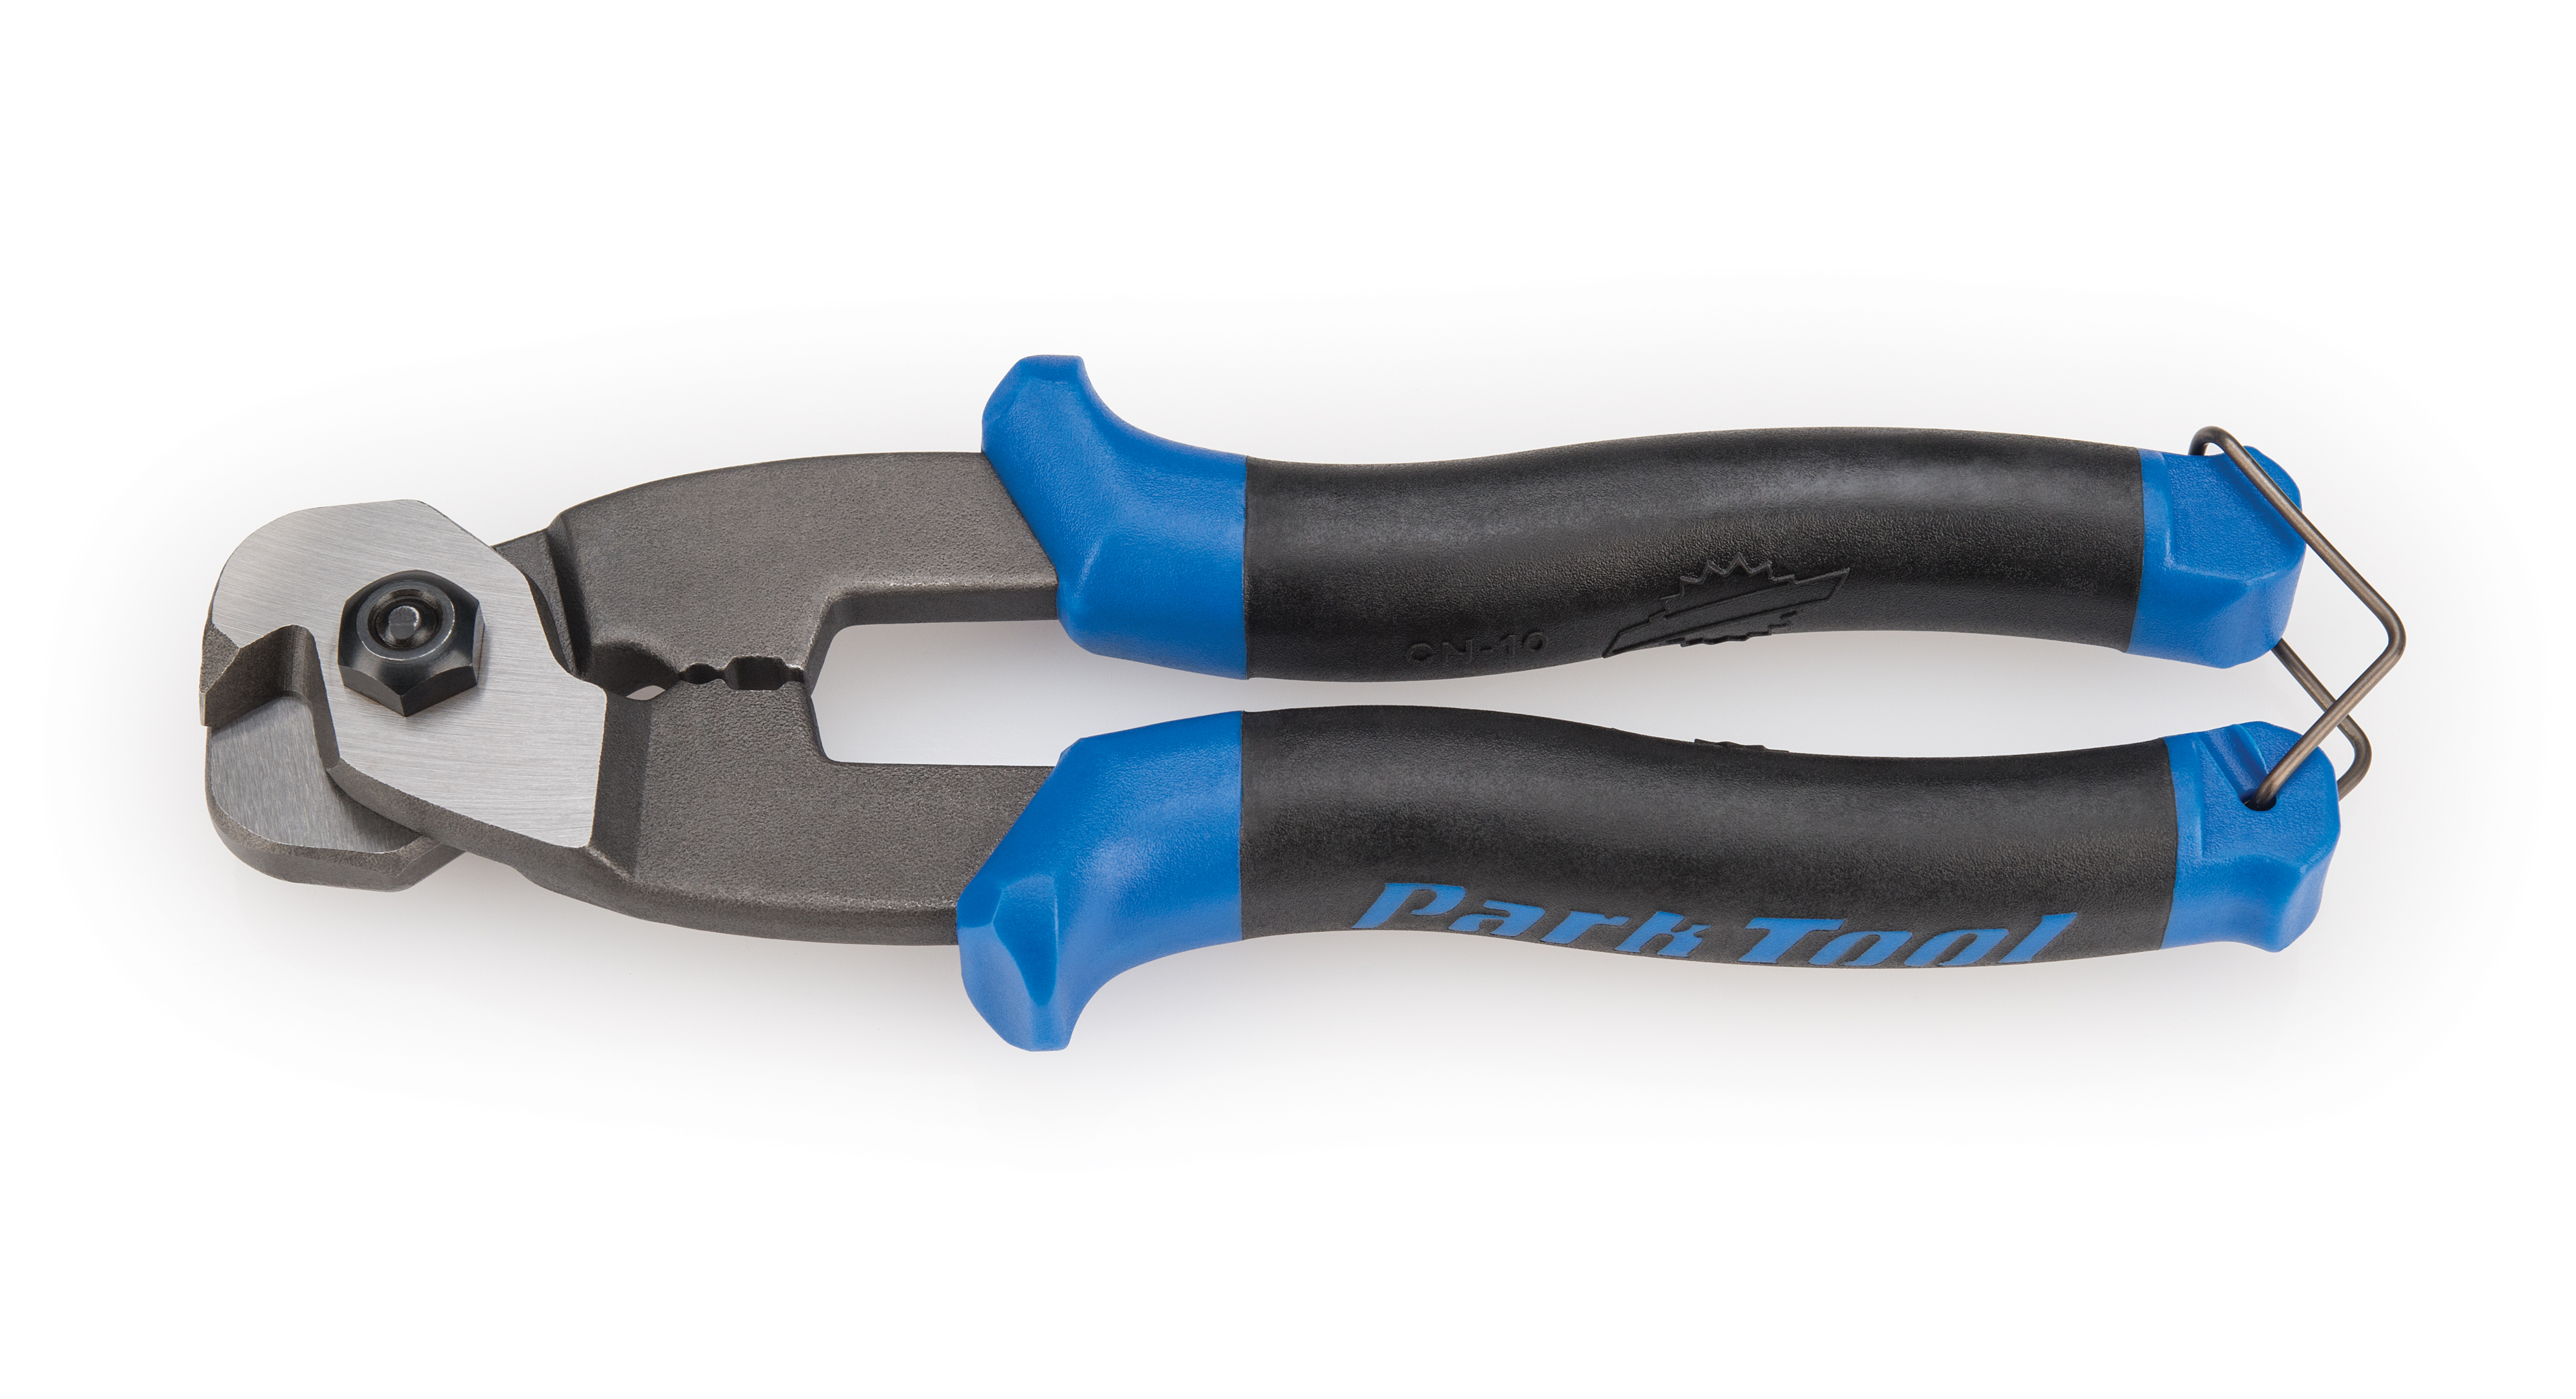 Cn 10 Cable Cutter Adjustment Park Tool